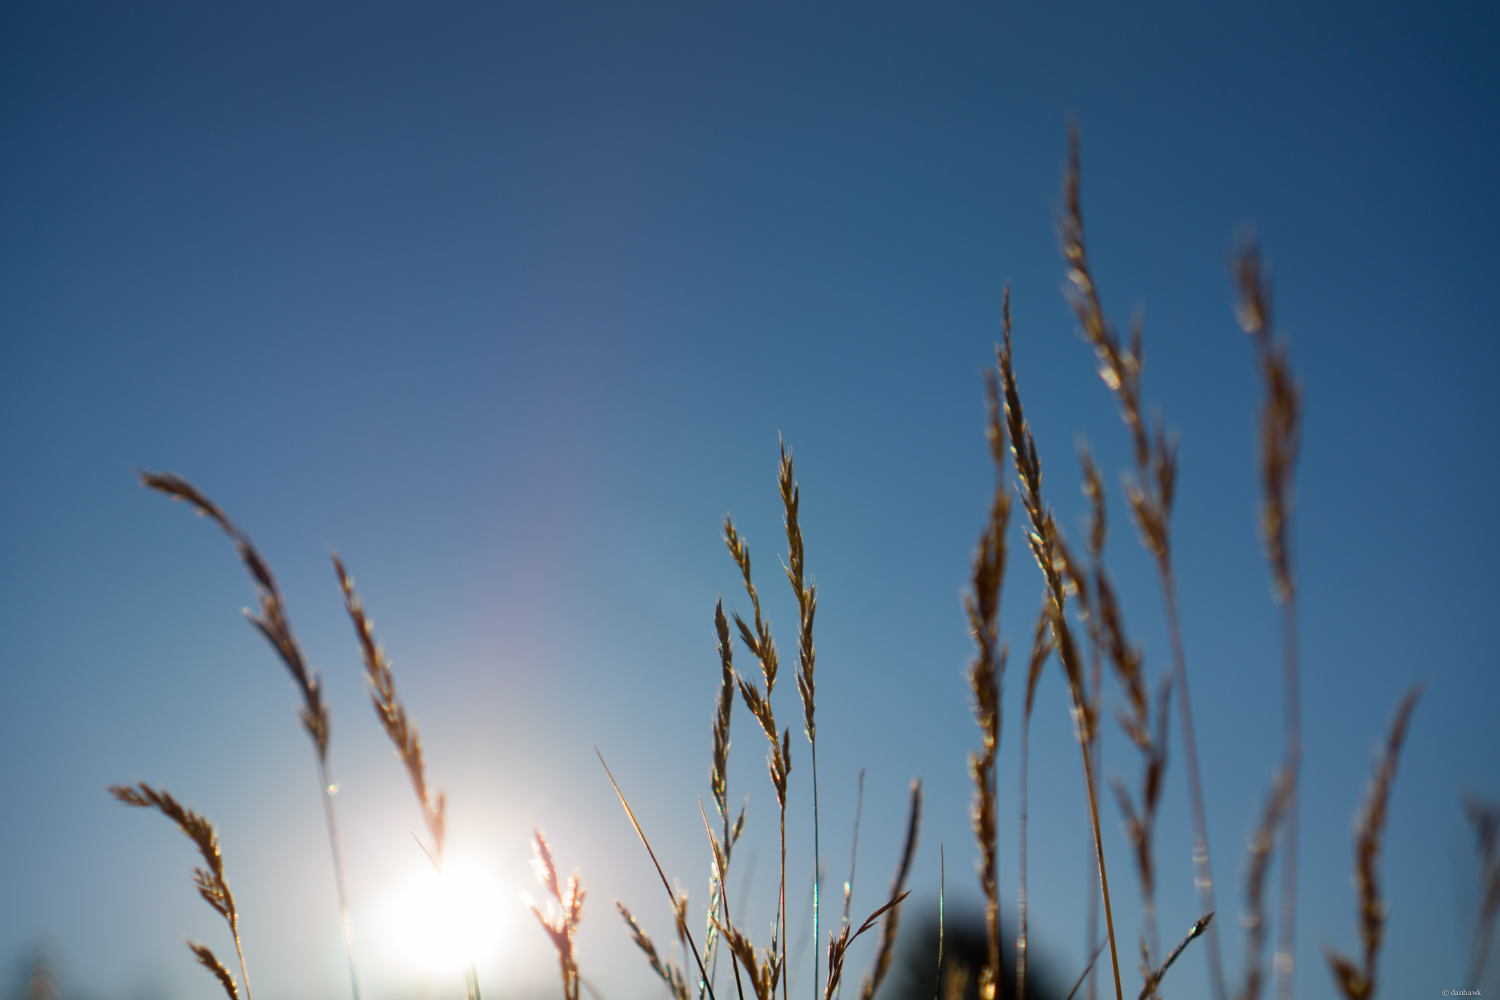 Growing By Sun | 365 Project | July 20th, 2013 | 35mm, f/2.8, ISO 100, 1/4000